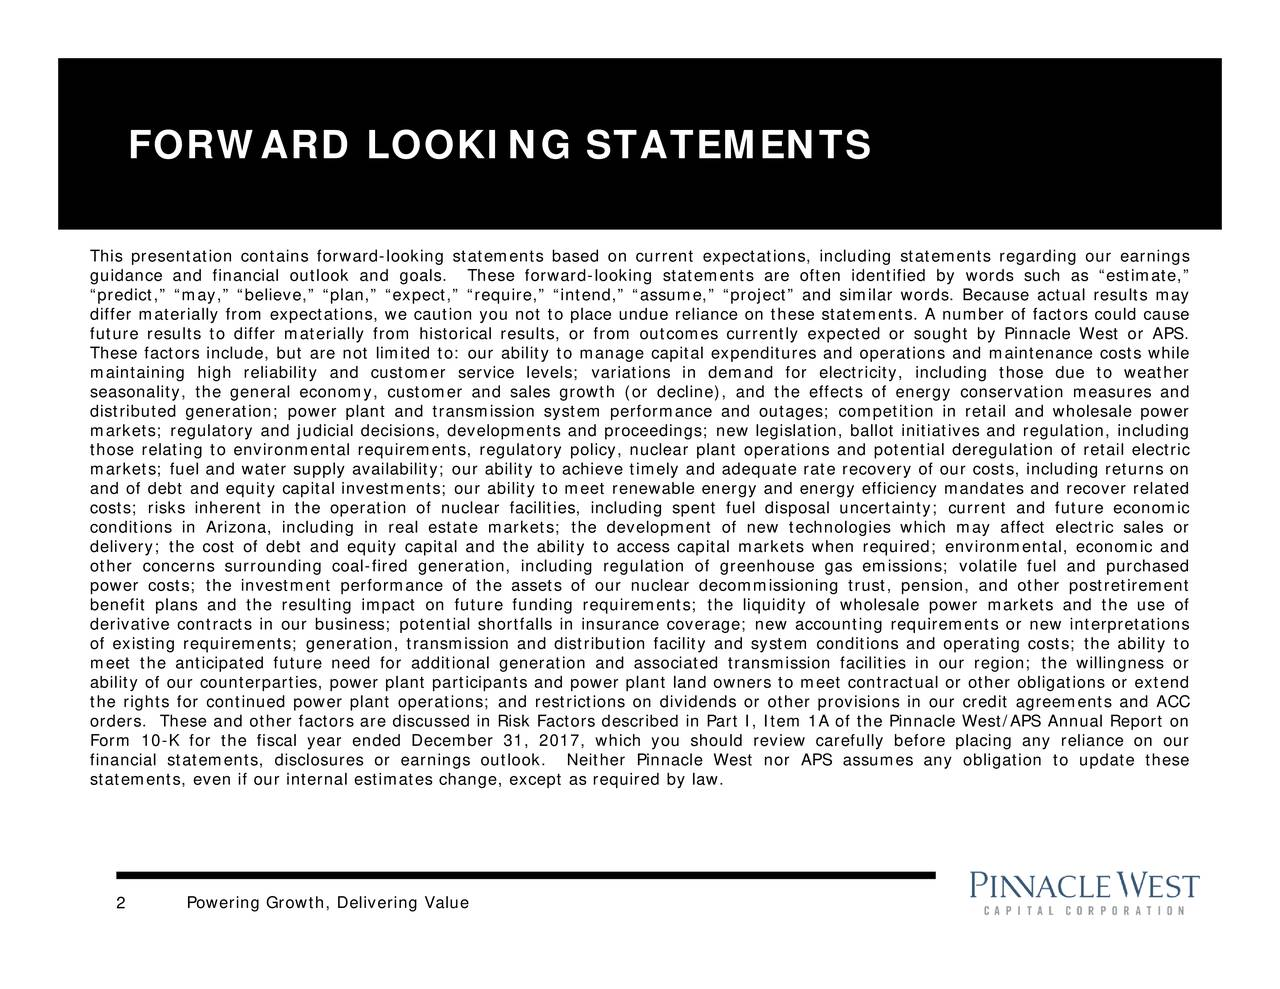 """nnacle West/APS Annual Report on l uncertainty; current and future economic ould review carefully before placing any reliance on our apital expenlear plant operations and potential deregulation of retail electricgion; the willingness or rrent eue reliance on thesmely and adequatements; the liquidity of wholesale power markets and the use of tions in demand for electricity, includplant land owners to meet contractual or other obligations or extend gulationrance coverage; ner Pinnacle West nor APS assumes any obligation to update these rom outcomes currently expected or sought by Pinnacle West or APS. ar facilities, including spent fuel disposa er and sales growth (or decline), and the effects of energy conservation measures and n,"""" """"expect,"""" """"require,"""" """"intend,"""" """"assume,"""" """"project"""" and similar words. Because actual results may Powering Growth, Delivering Value FORWARD LOOKING STATEMENTS 2 This presentation contains forwardcodelihpow;irnfvitstetfircuvdittgncouatflfapttel;tpotteetuiessydnfilreierisiuords such as """"estimate,"""""""